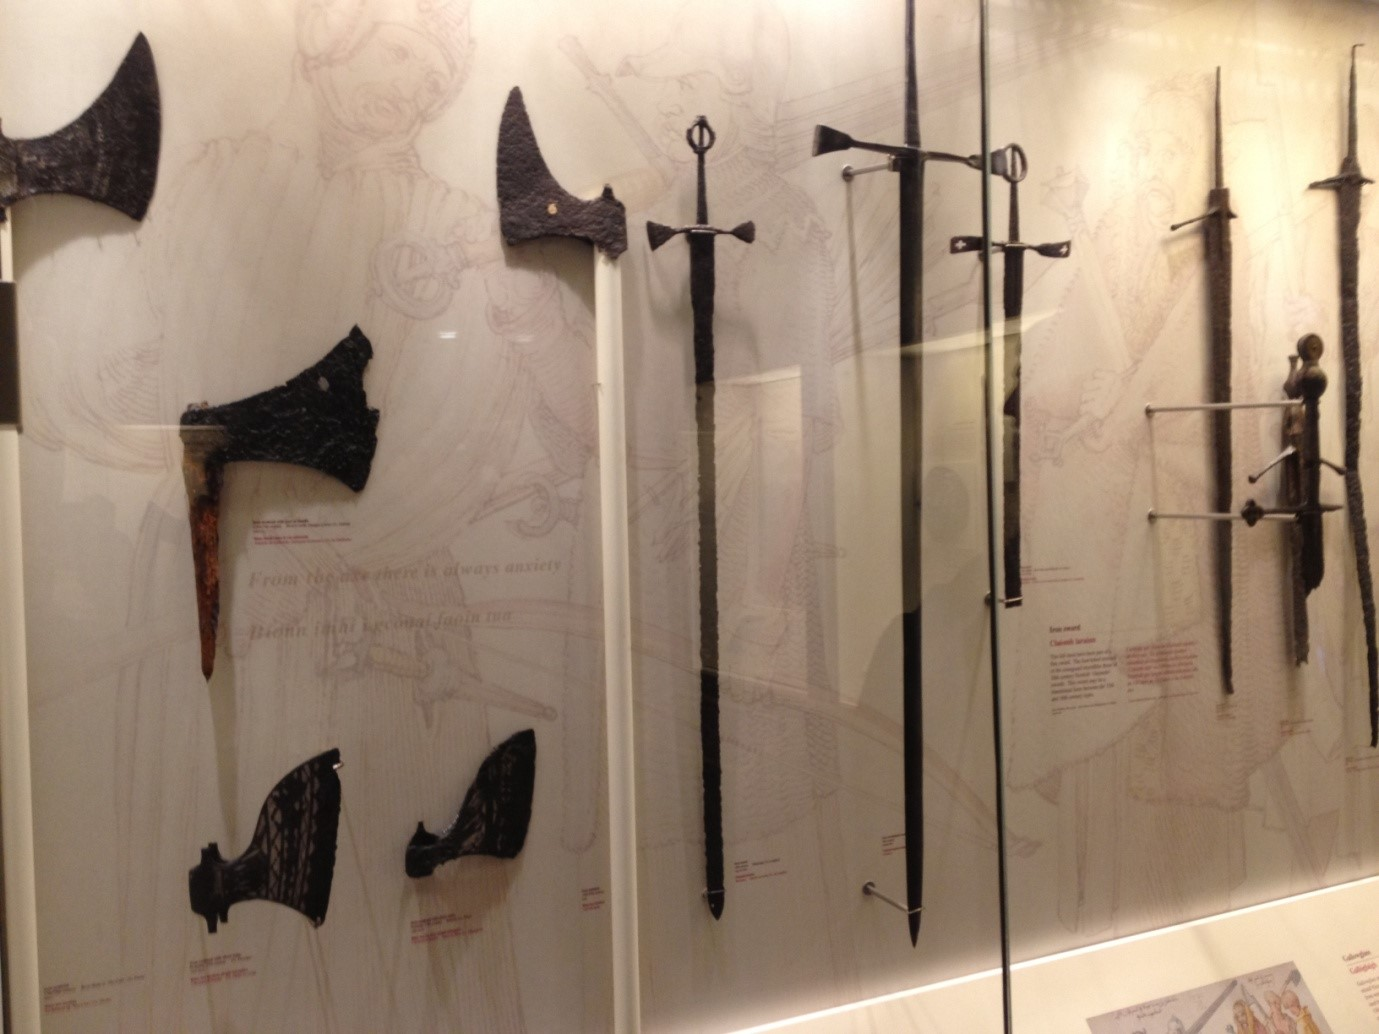 Display of Galloglass weapons in the National Museum, Collins Barracks (For size perspective the blade of the lower left axehead is a foot long)